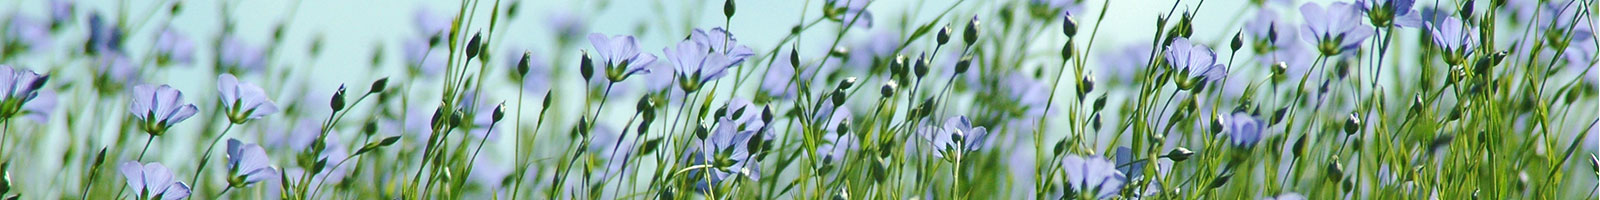 Linseed essential oil – Source of Lipids as Active Ingredients for Pharmaceuticals and Nutraceuticals.